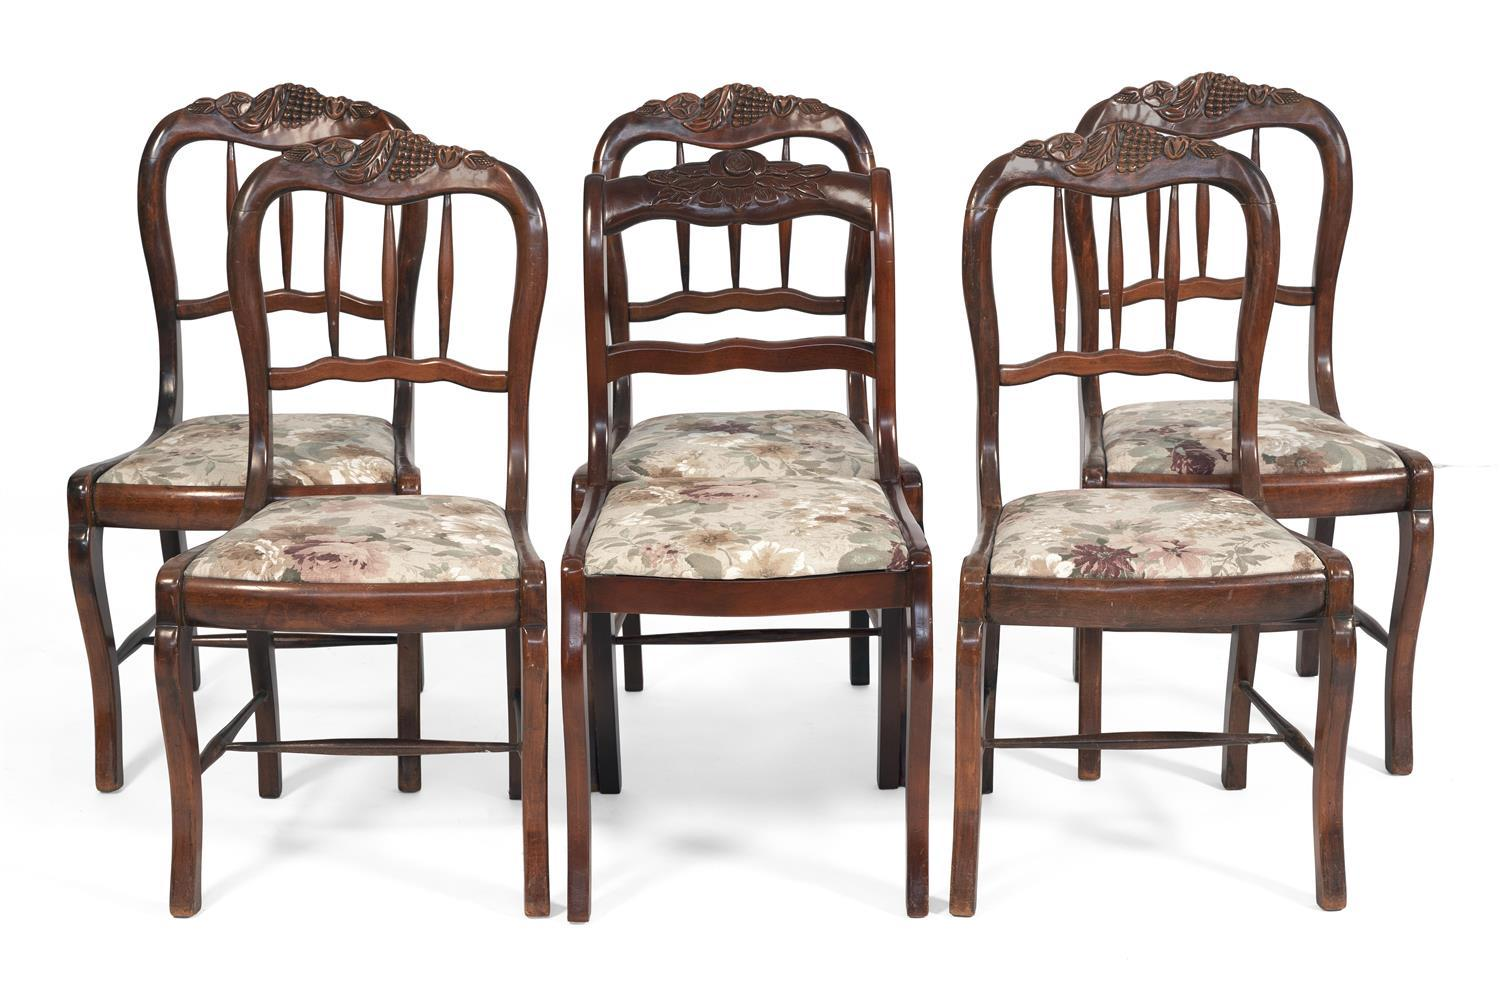 """ASSEMBLED SET OF SIX VICTORIAN-STYLE SIDE CHAIRS In walnut. Seats with floral upholstery. Back heights 34.5"""". Seat heights 17.25""""."""